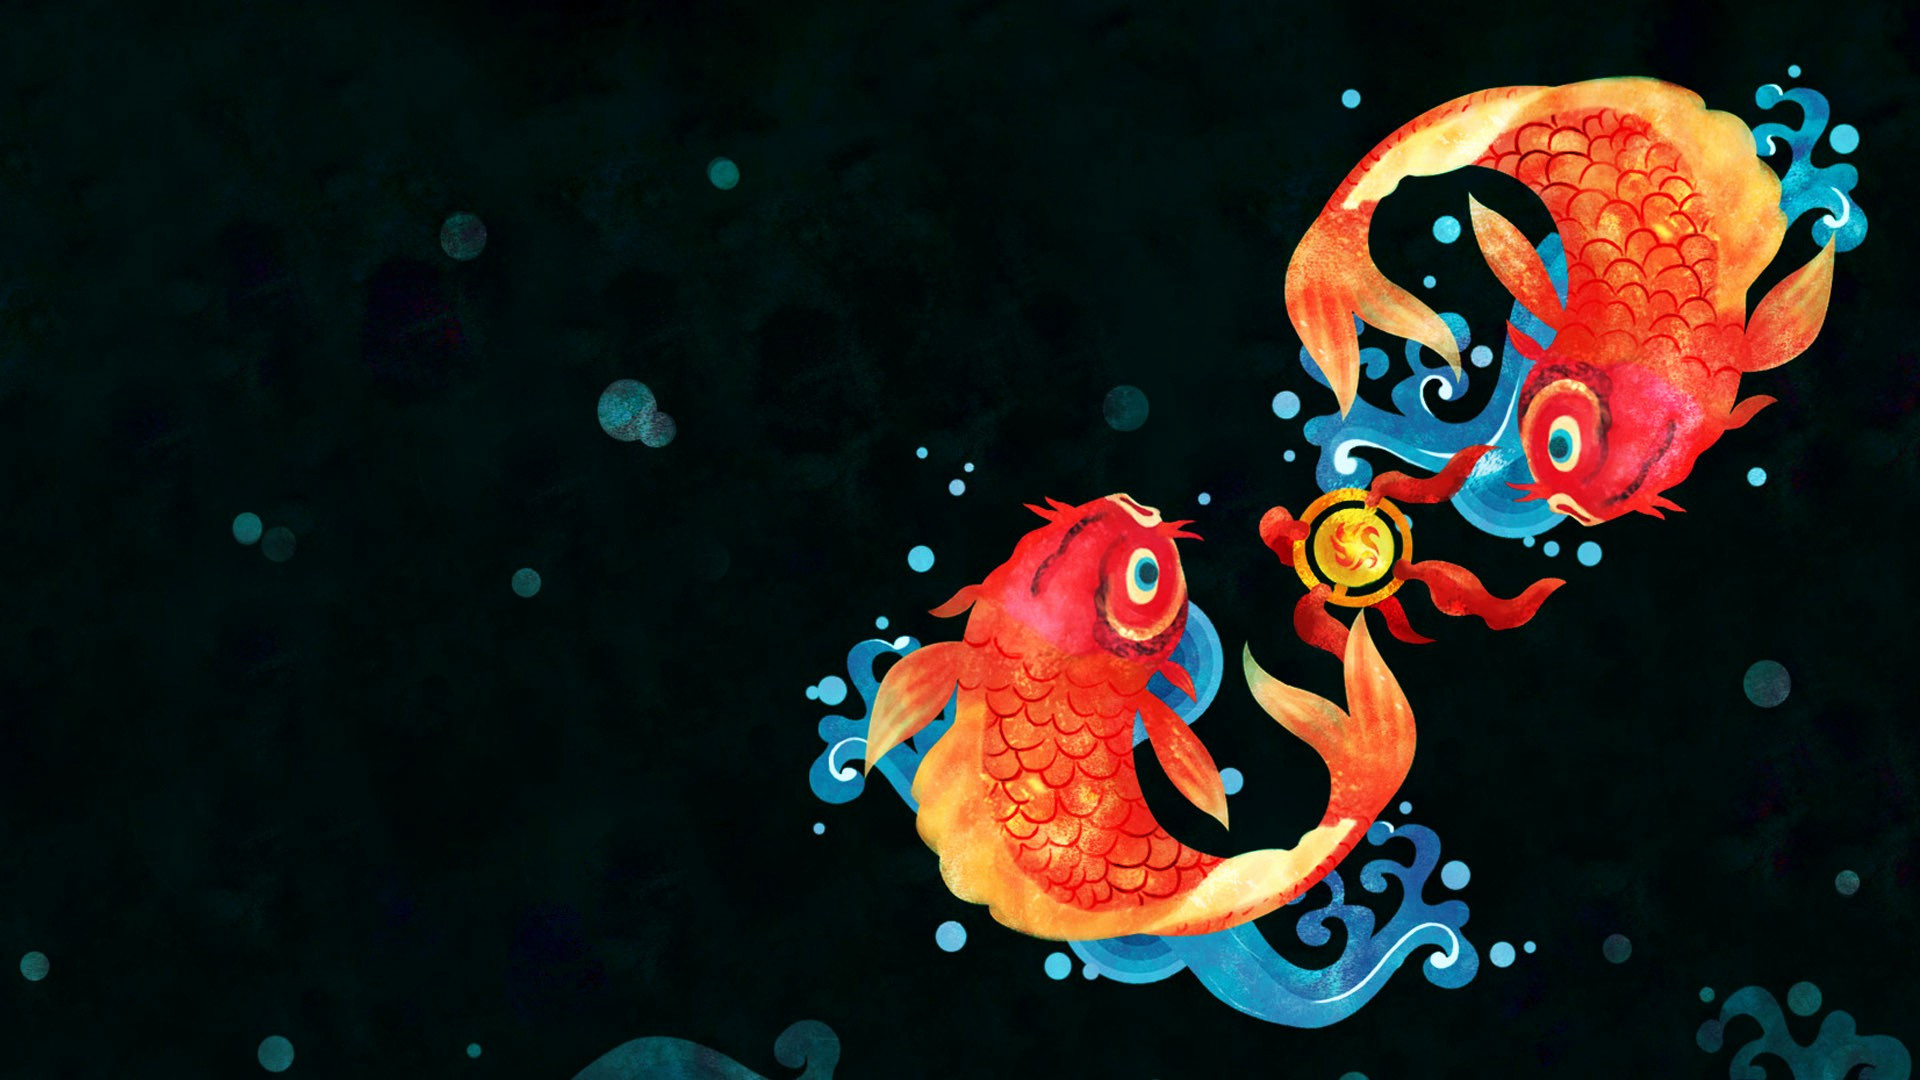 Res: 1920x1080, Fish Wallpaper Live Awesome Goldfish Hd Wallpaper Impremedia